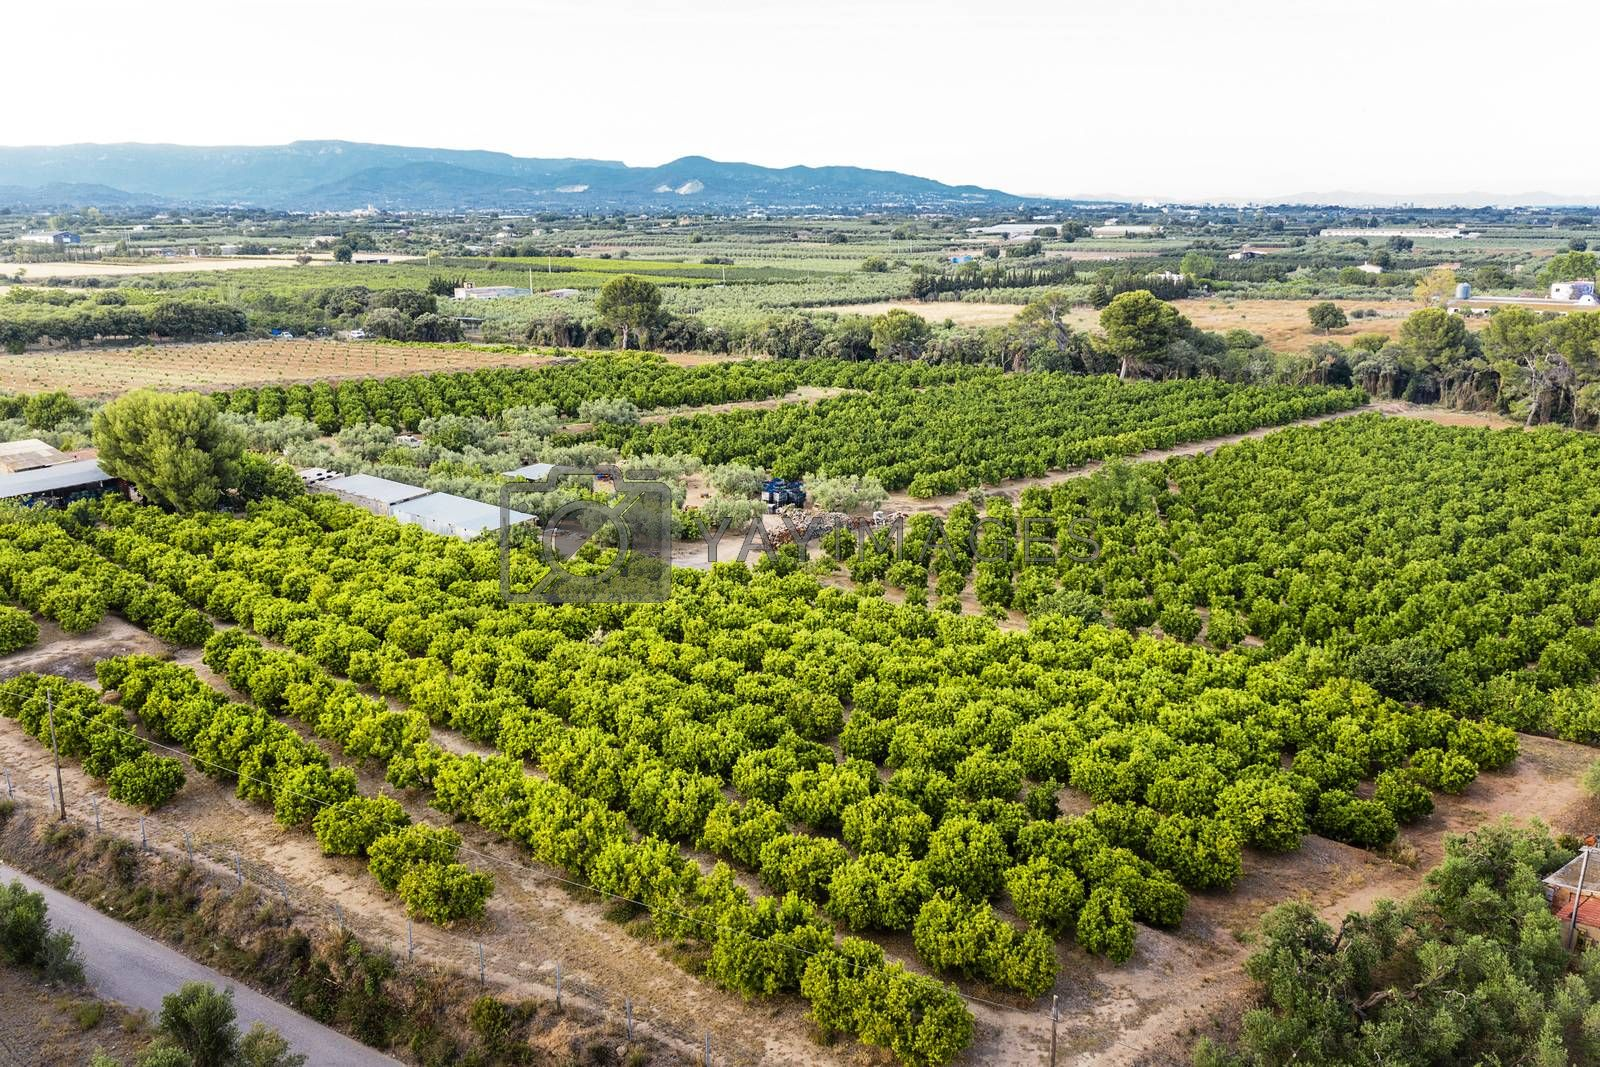 top view of a fruit tree plantation of a farm near of the mountains in Tarragona, green field agriculture industry aerial view